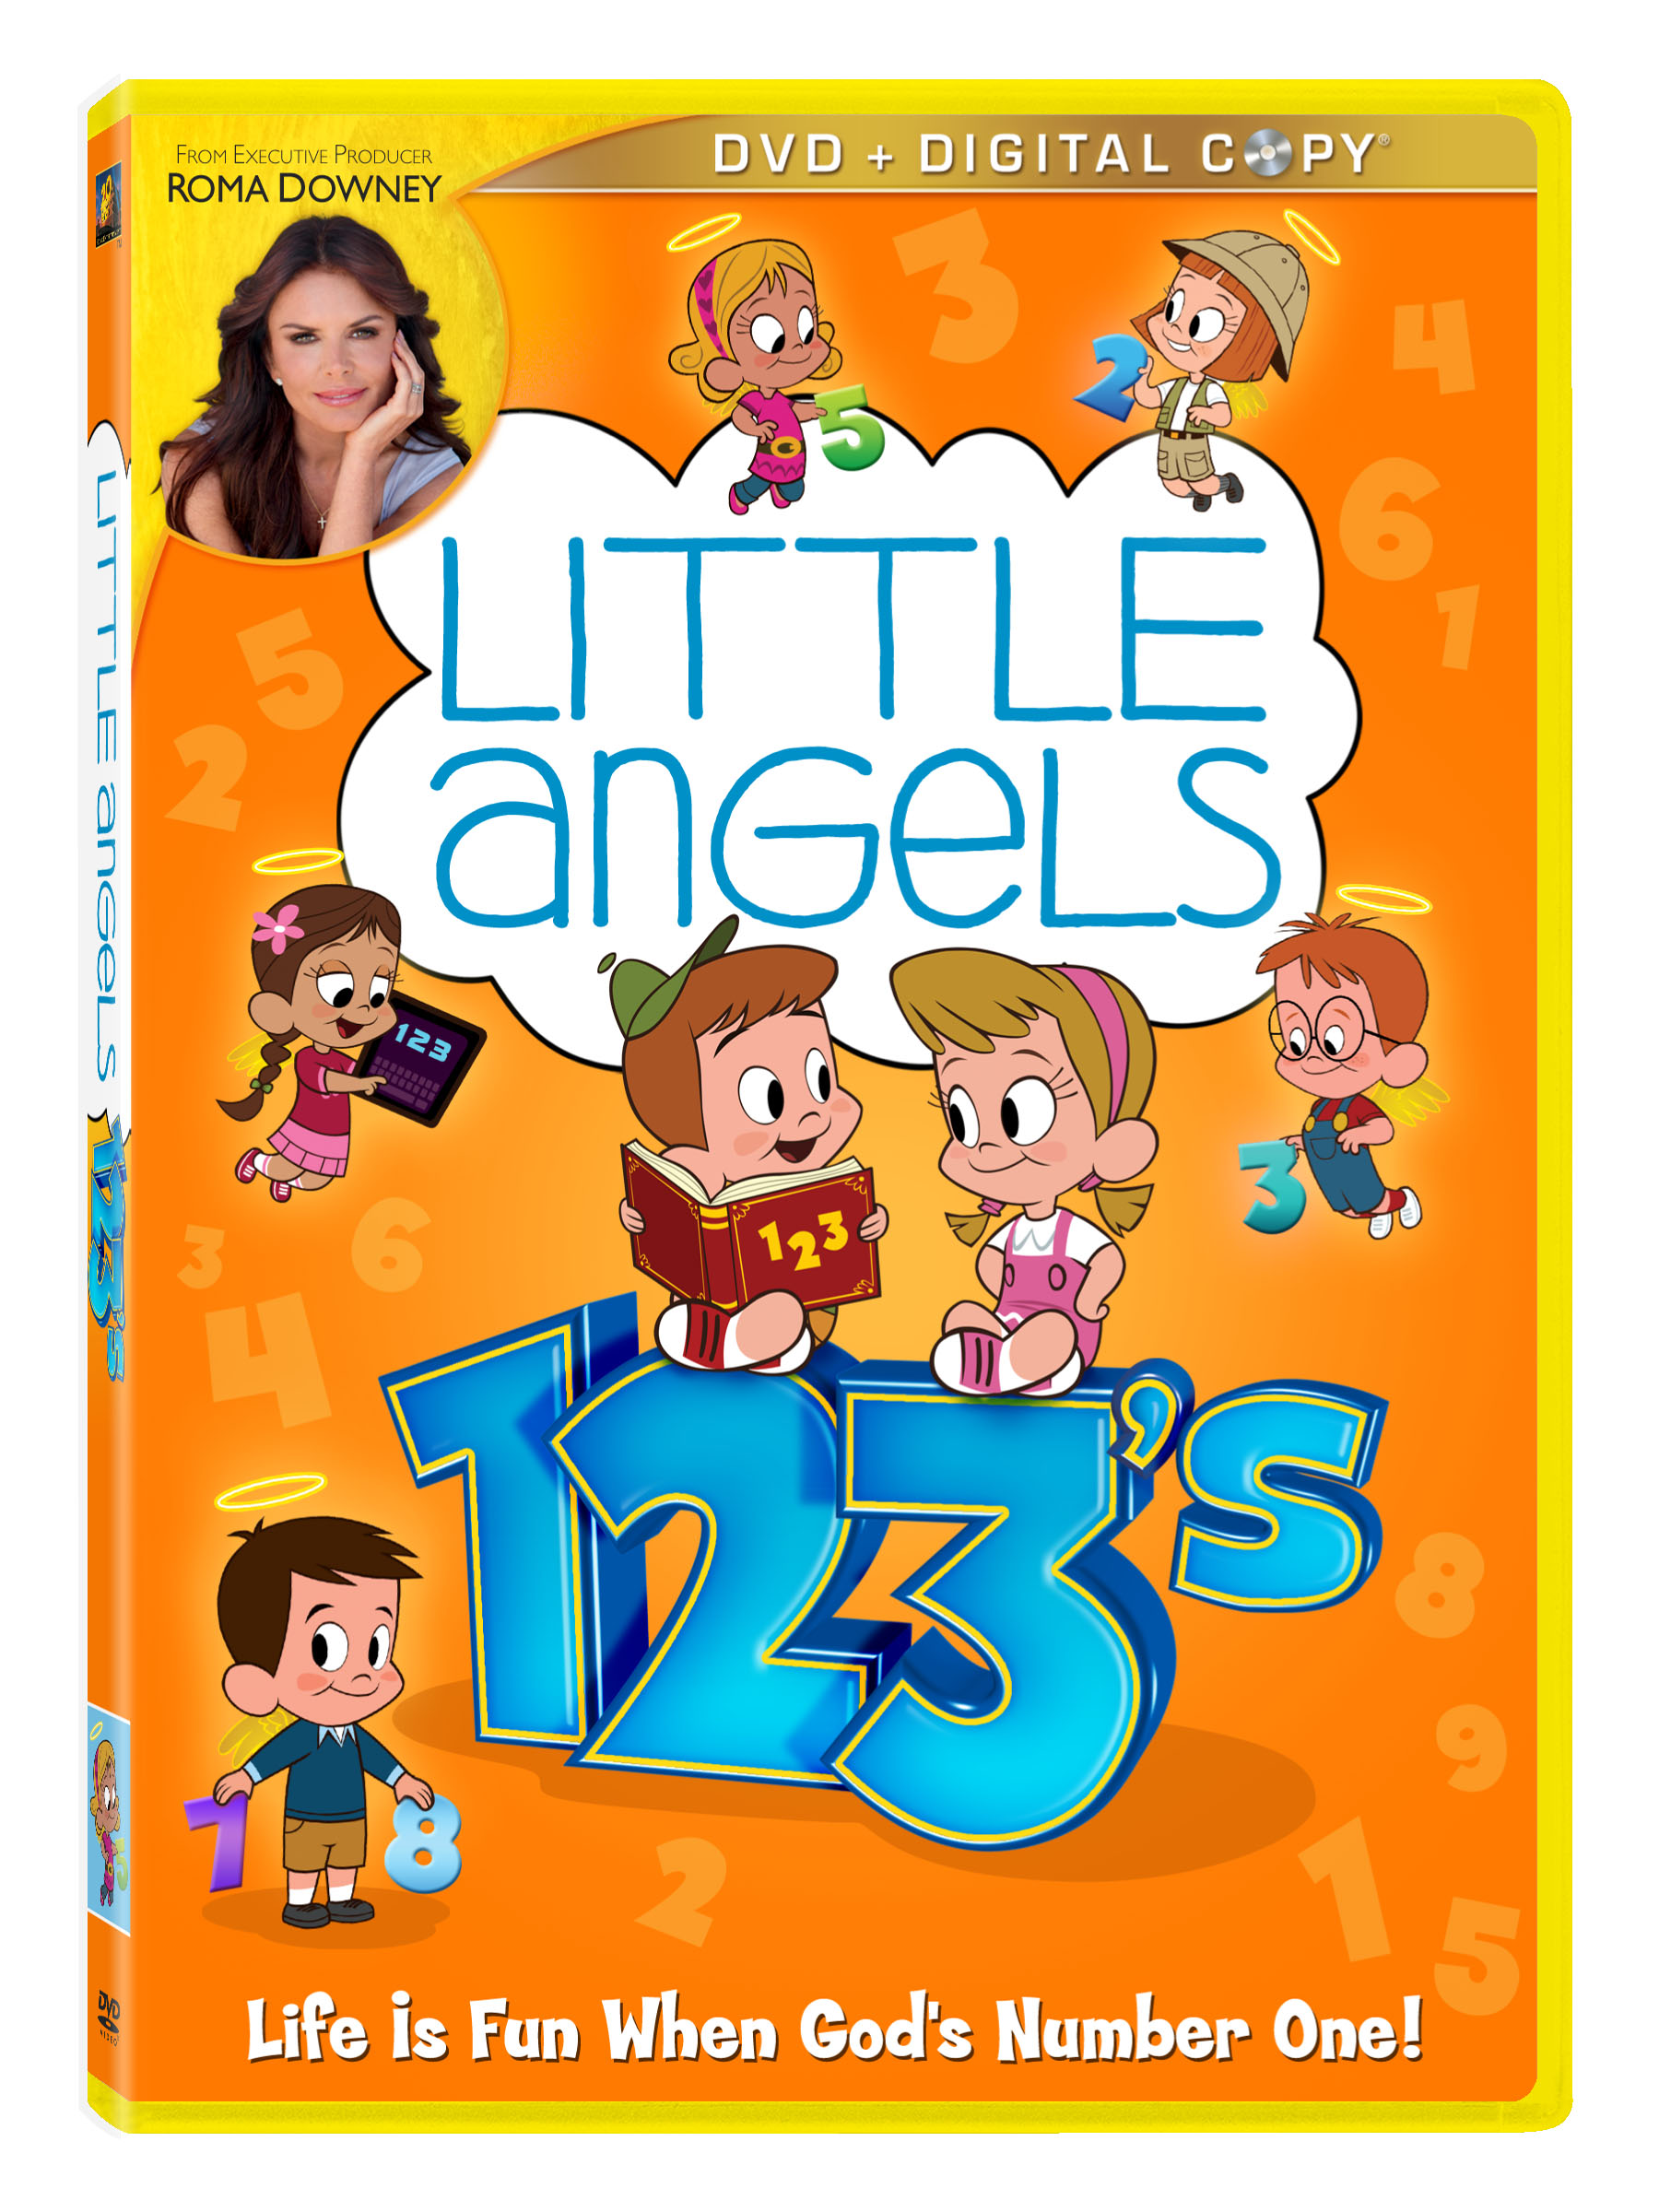 LITTLE ANGELS 123s